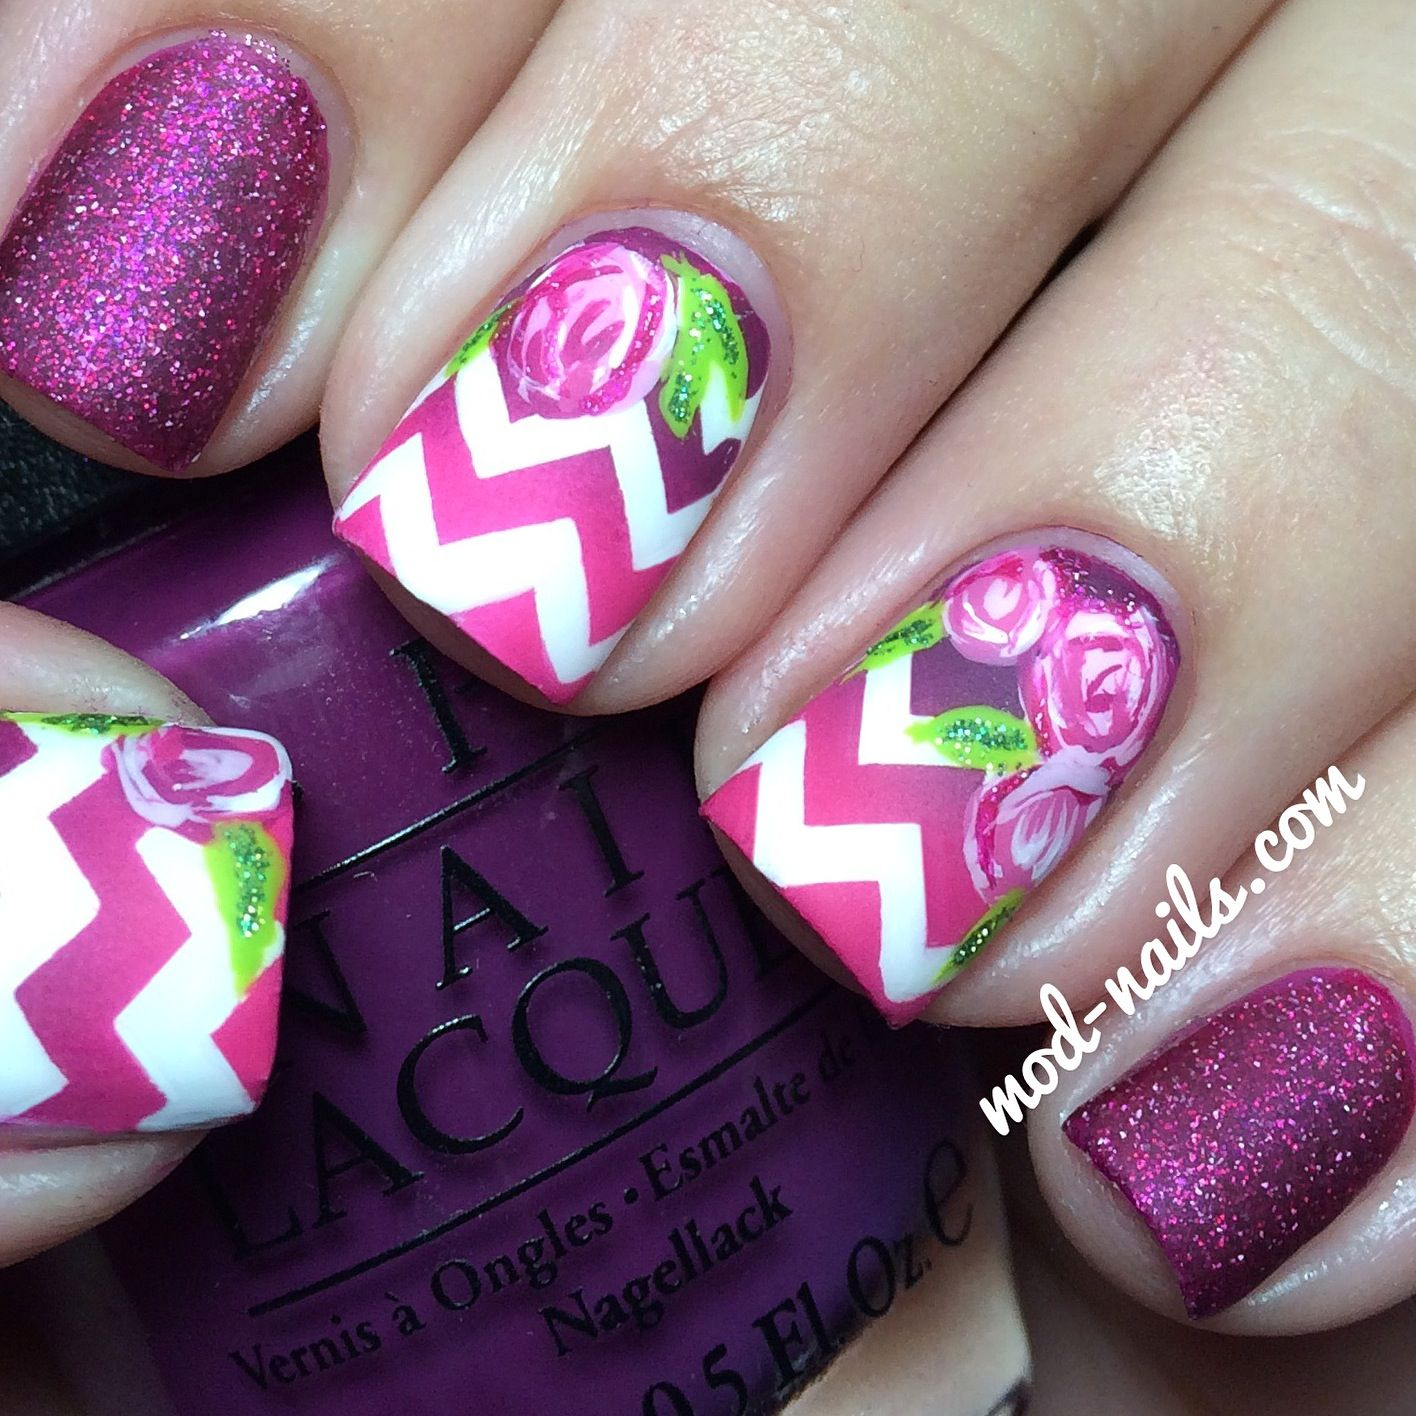 How To: Matte Chevron And Roses Nail Art | Skittle Nail Art 2 ...